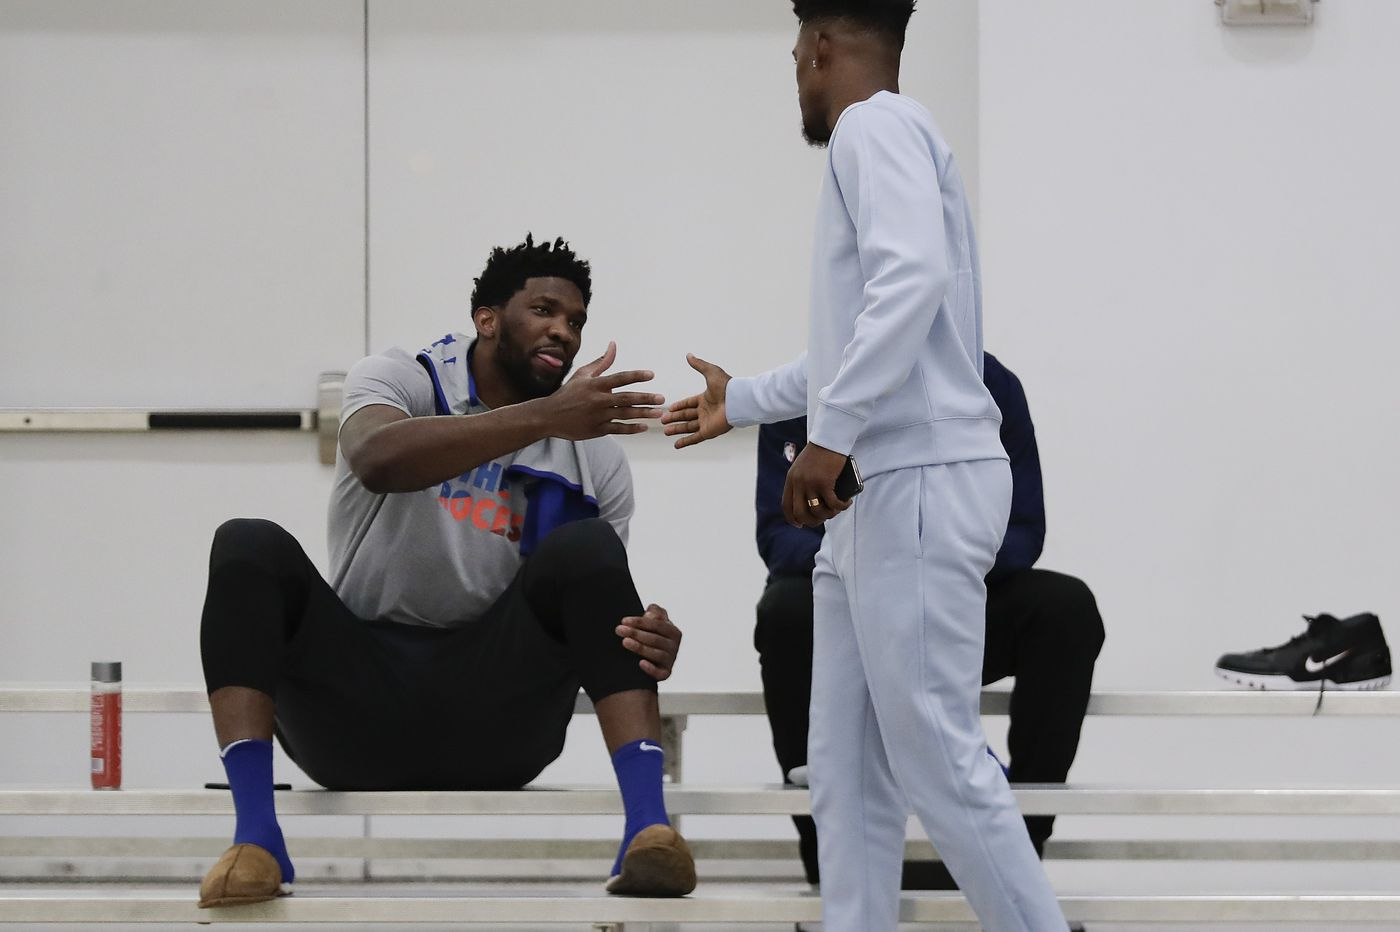 Sixers' Joel Embiid to play in Game 4 versus Nets